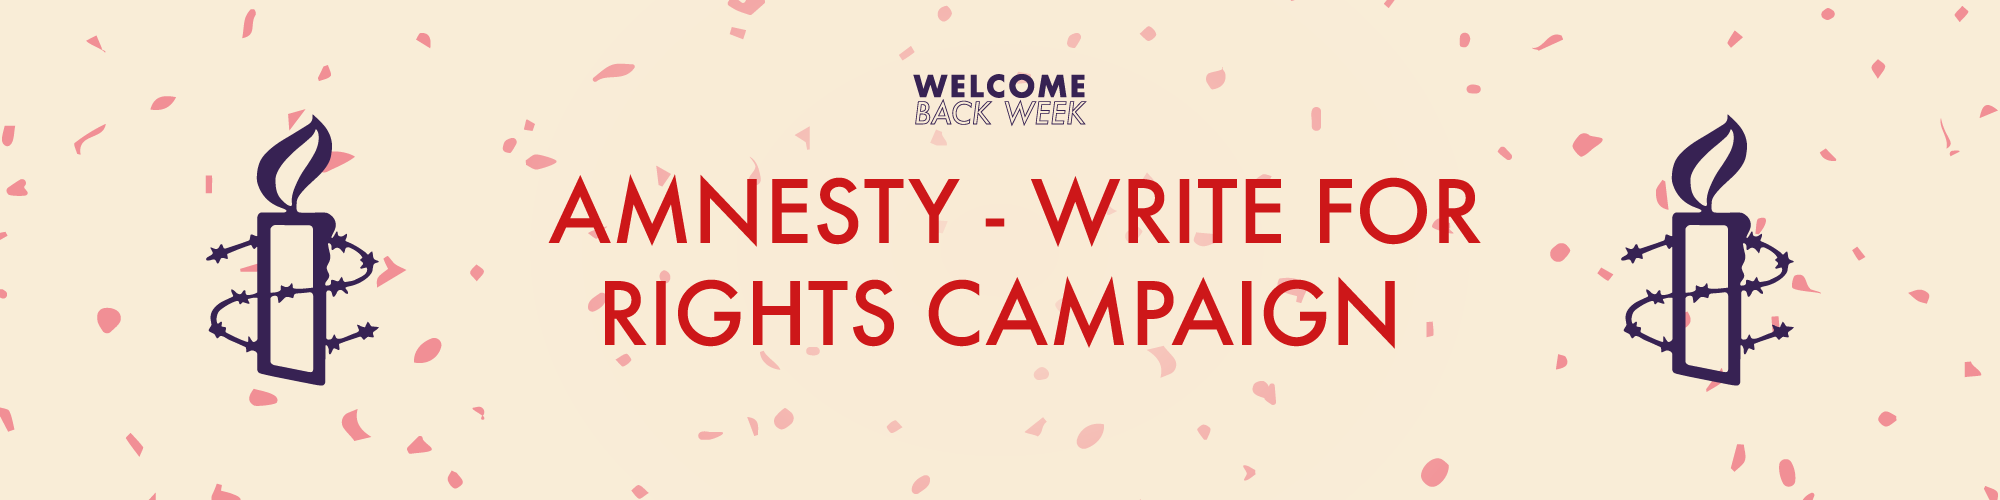 Amnesty - Write for Rights campaign